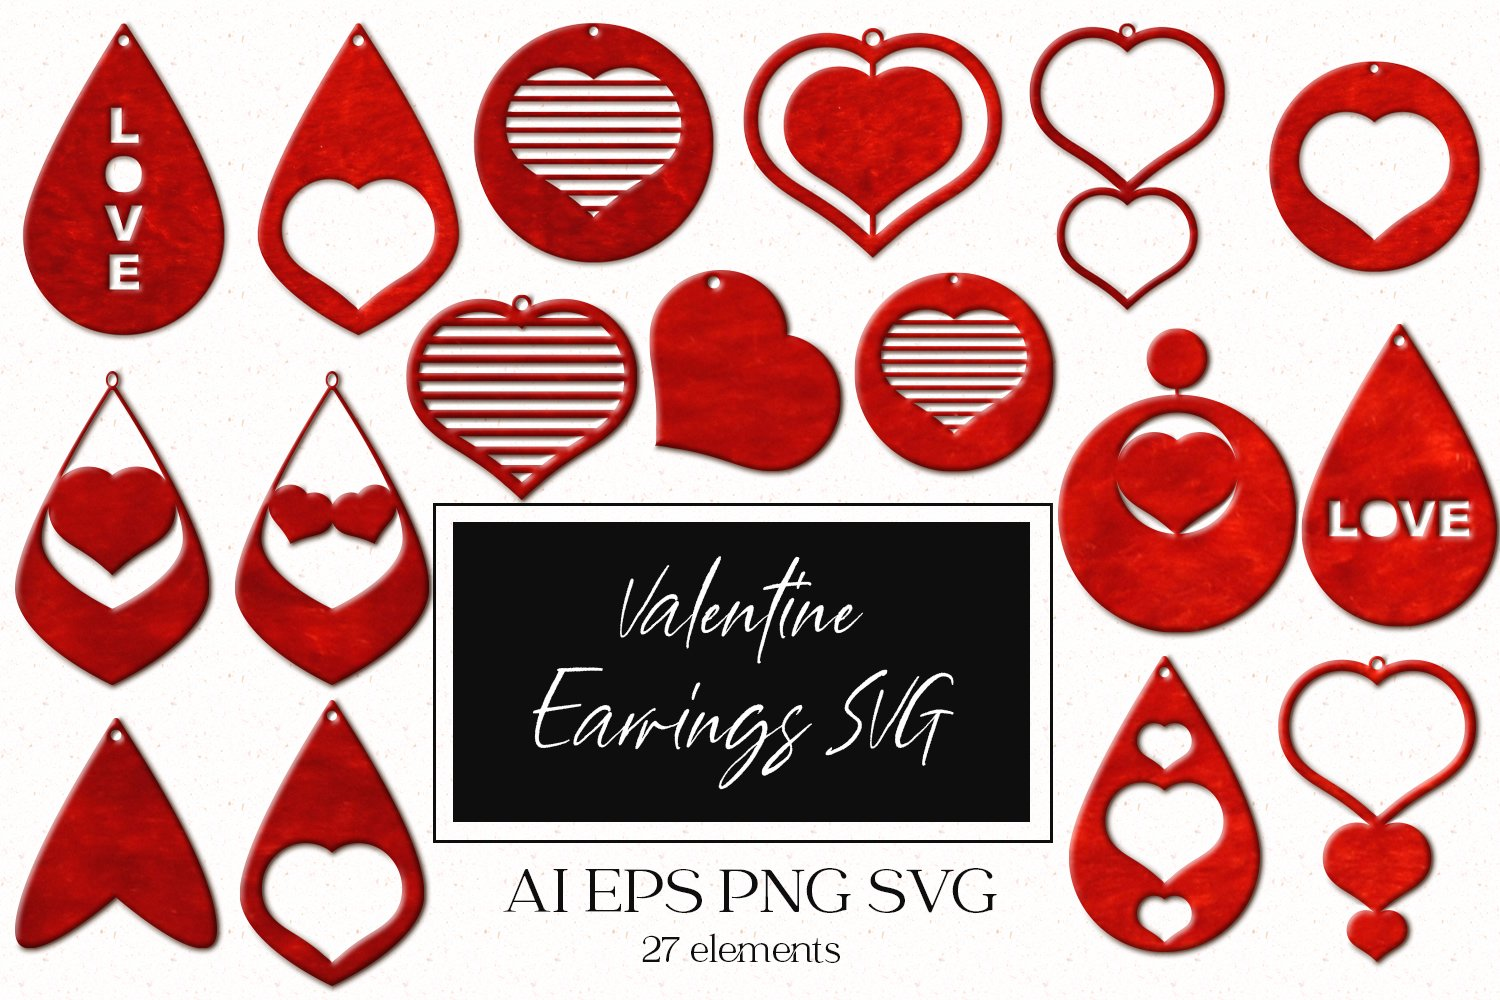 Valentine Earrings SVG example image 1